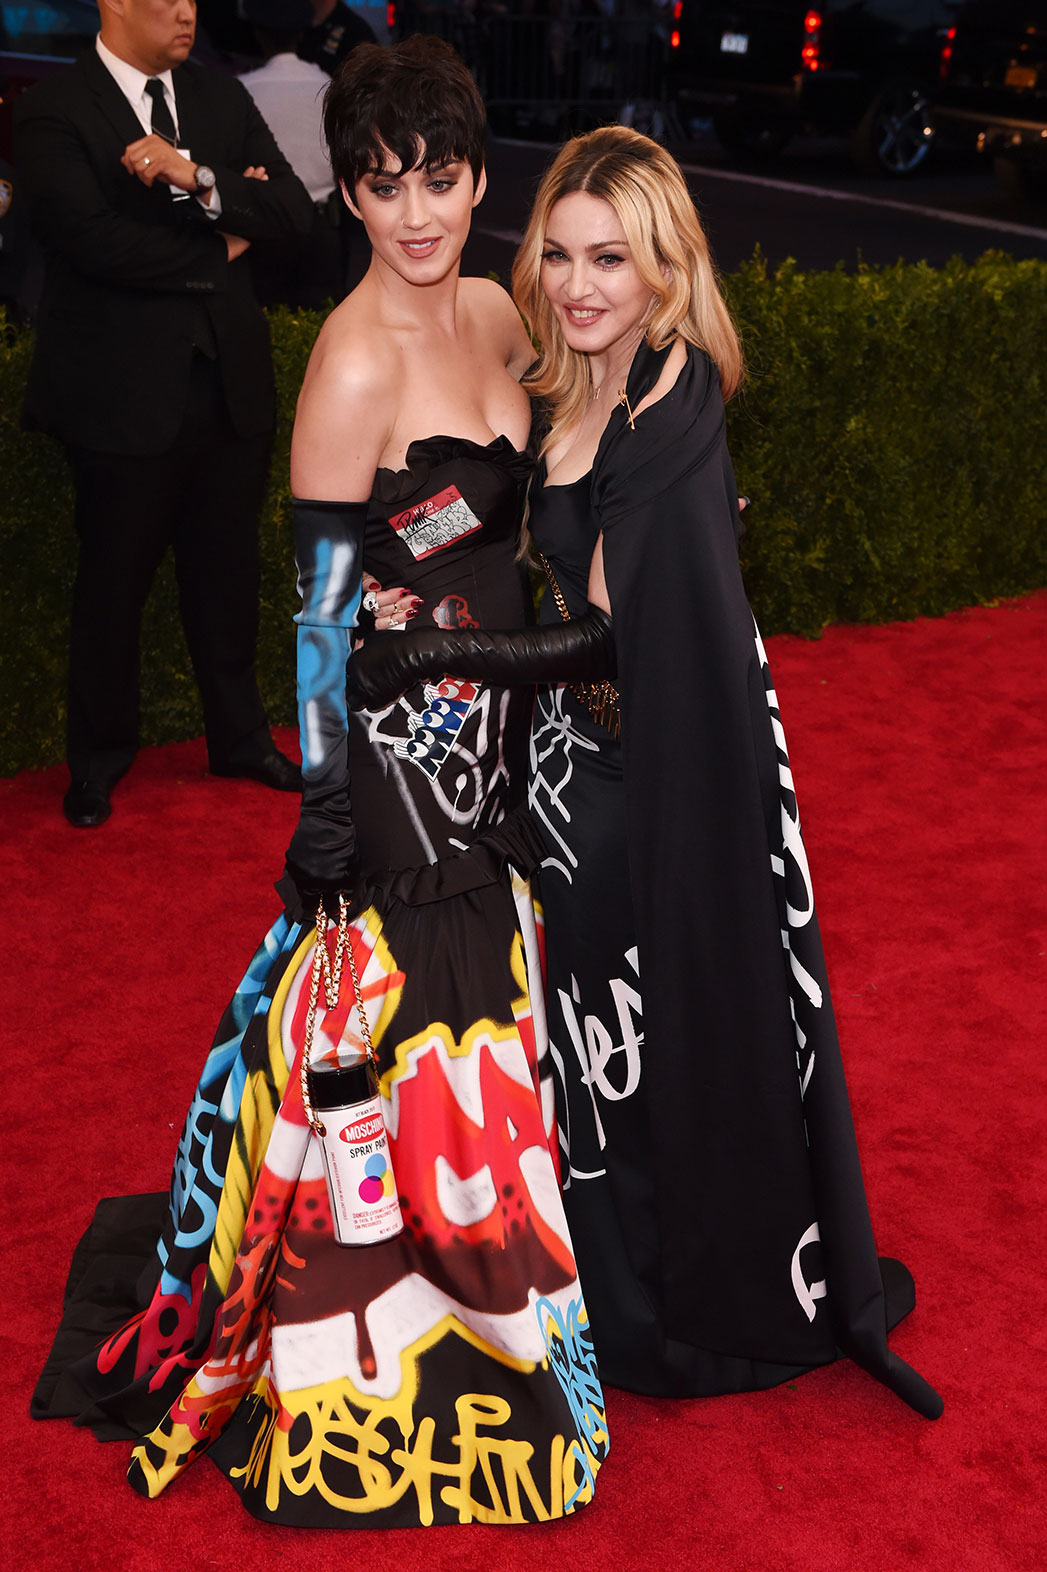 Katy Perry and Madonna